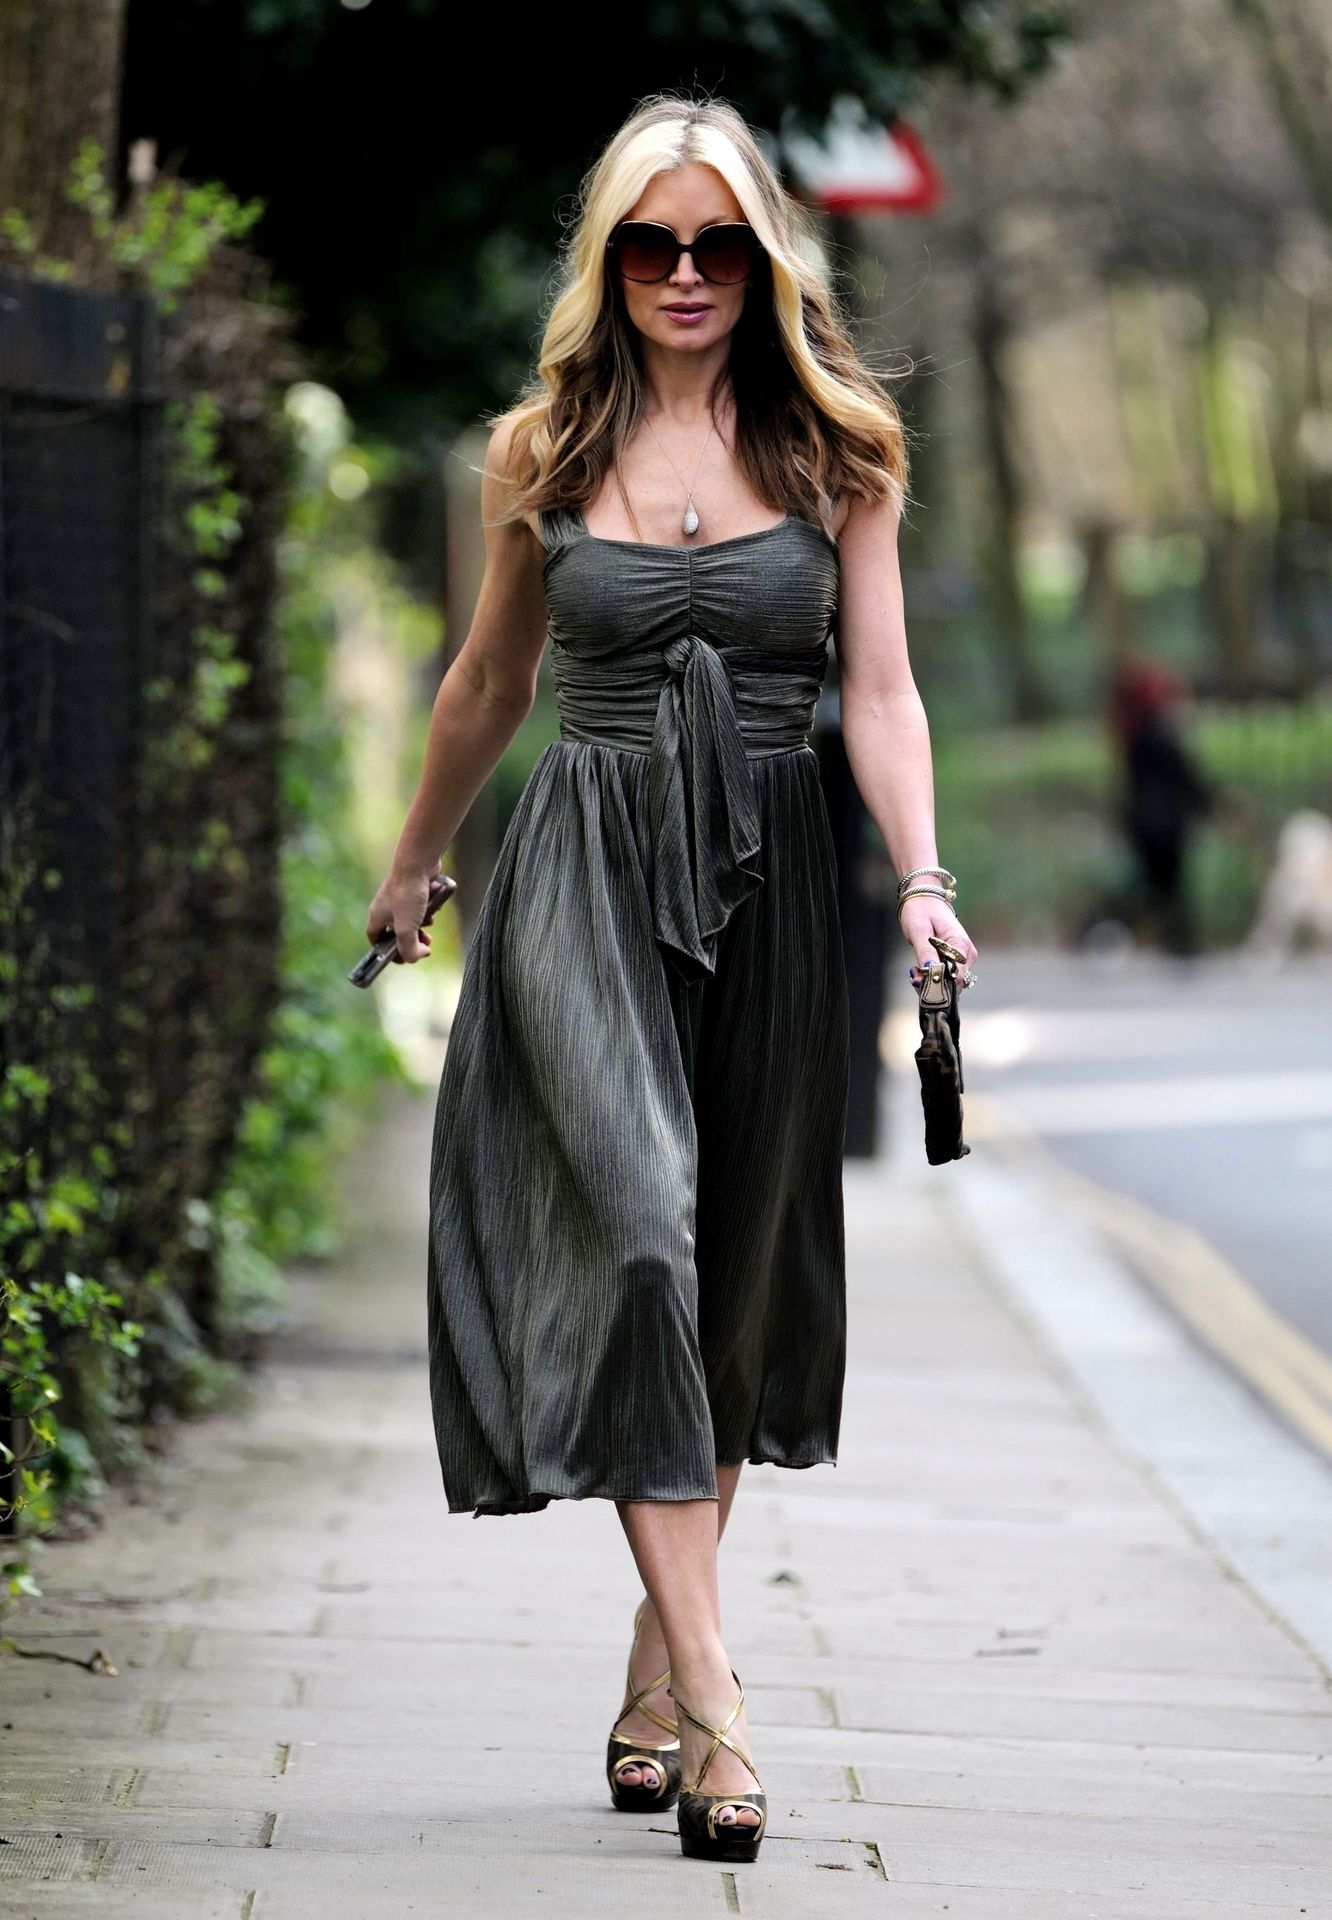 Caprice Bourret Steps Out Looking Glamorous In London 0022